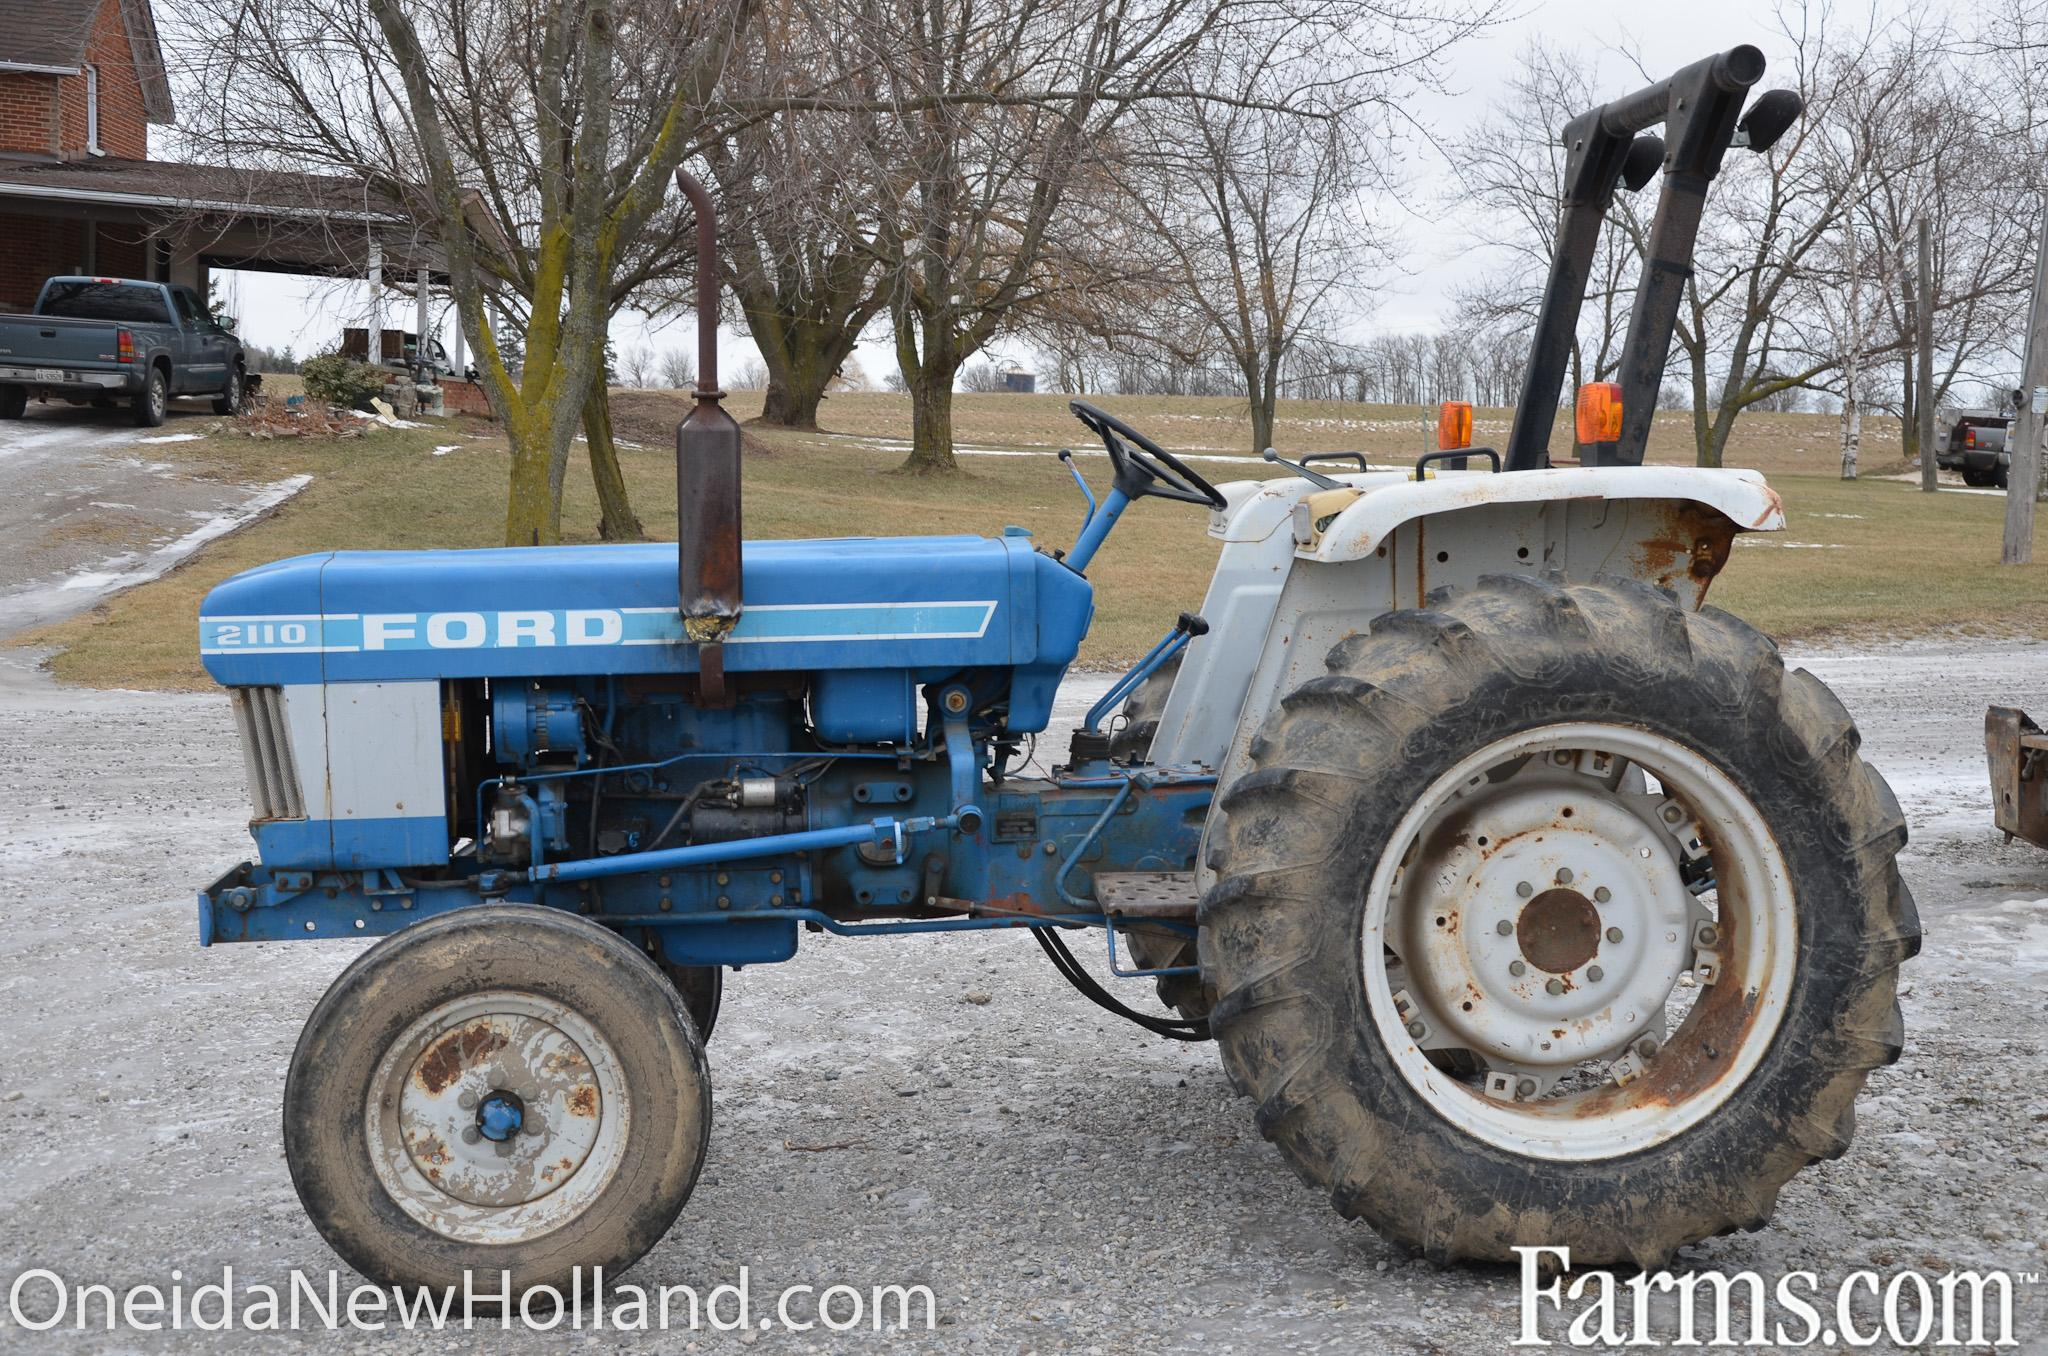 Ford 5200 Tractor Farm : Ford tractor for sale farms